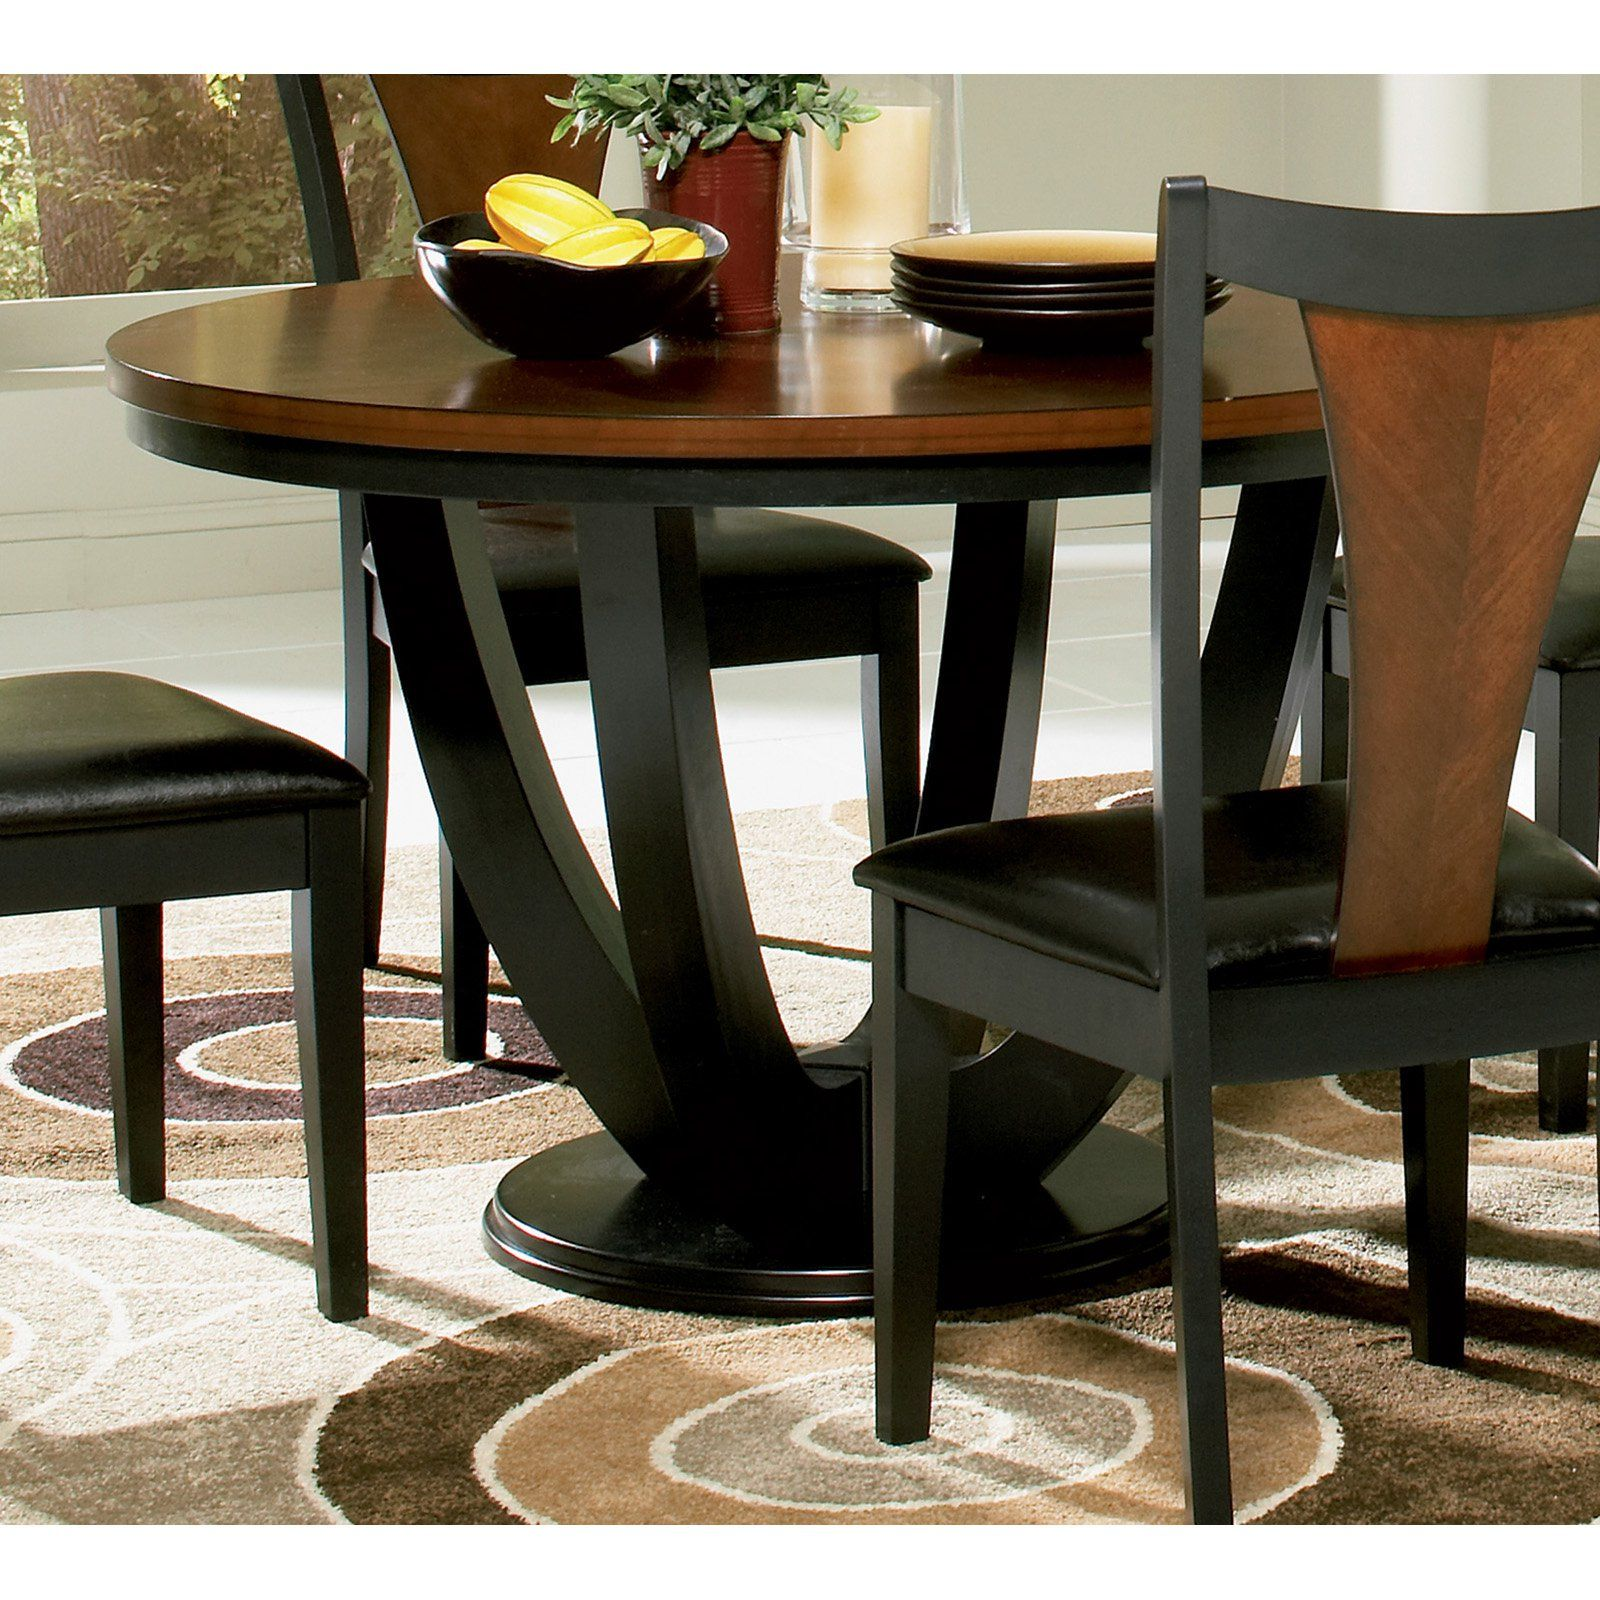 Coaster Furniture Boyer Dining Table Counter Height Dining Table